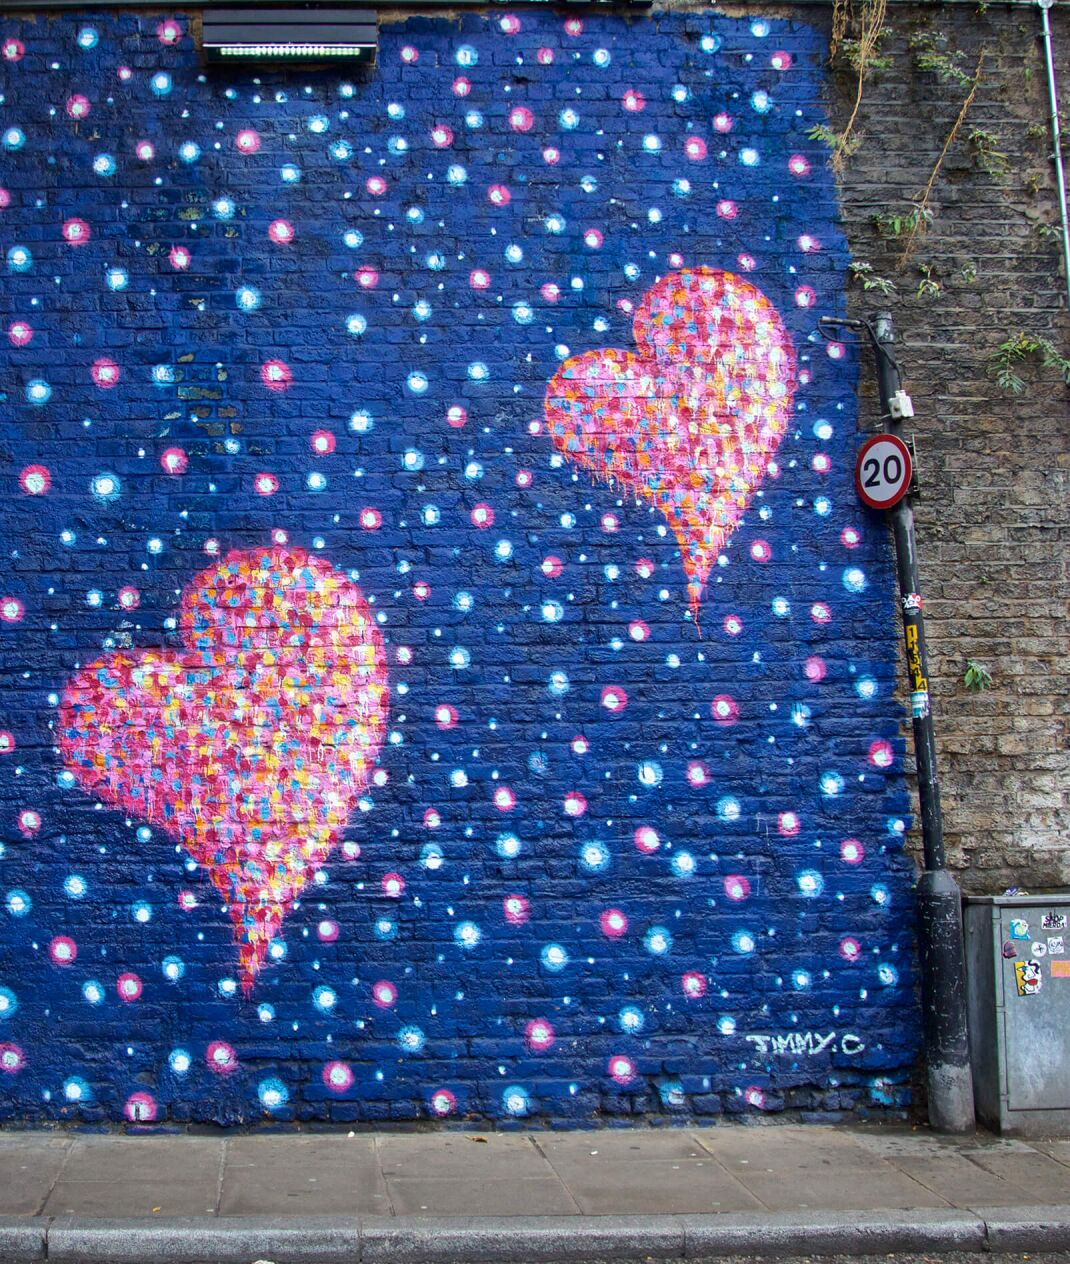 wall of graffiti with pink hearts